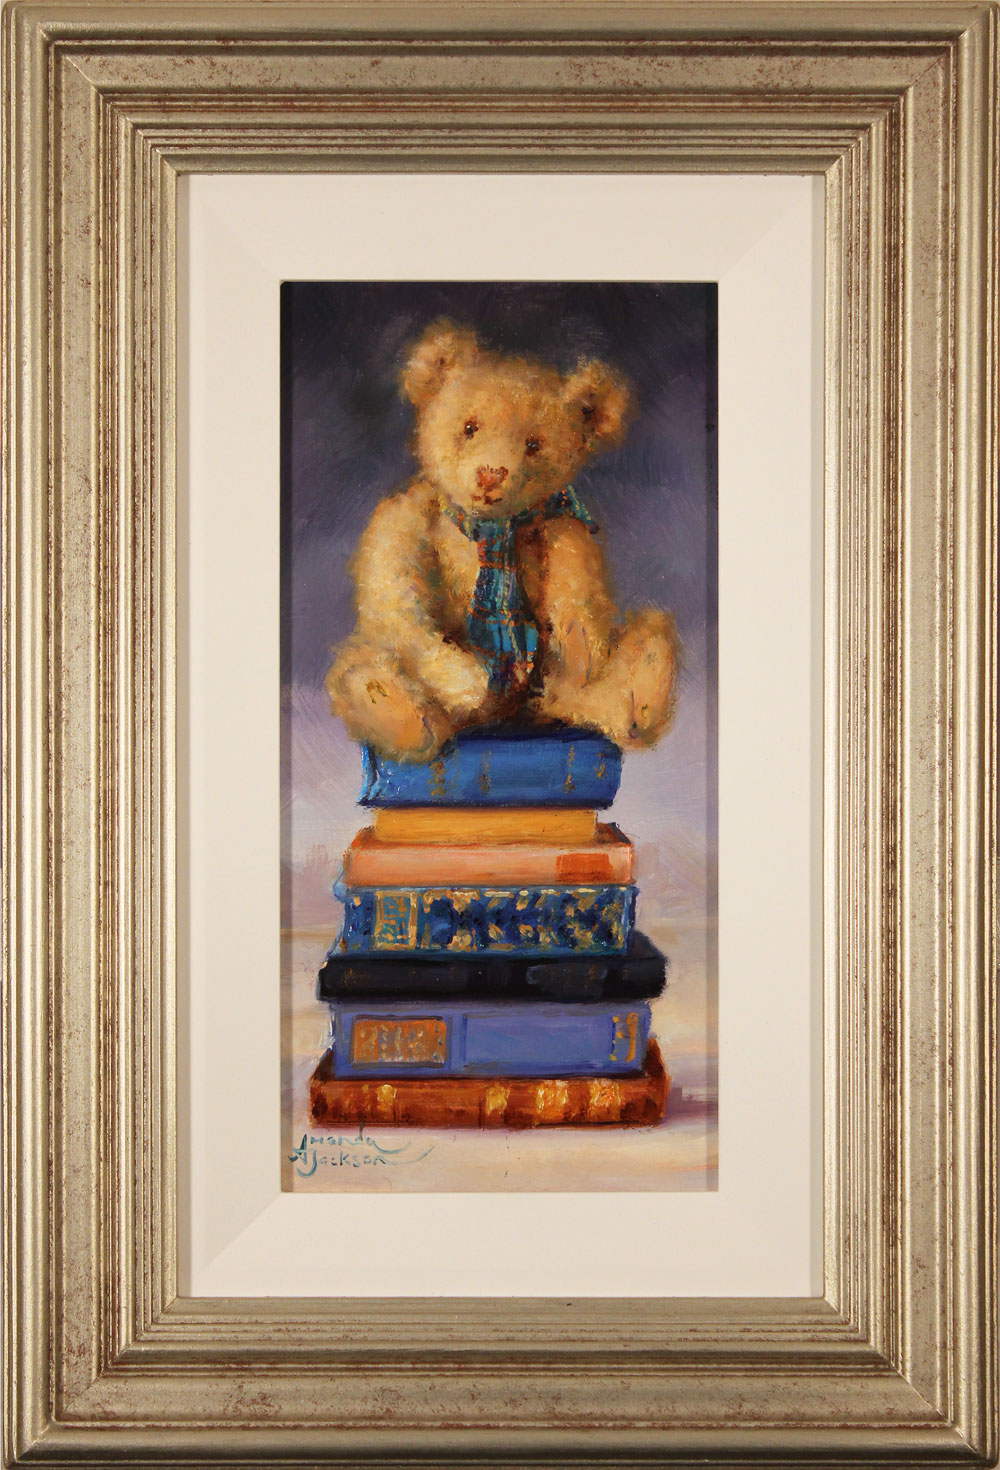 Amanda Jackson, Original oil painting on panel, Bear's Colourful Tales, click to enlarge